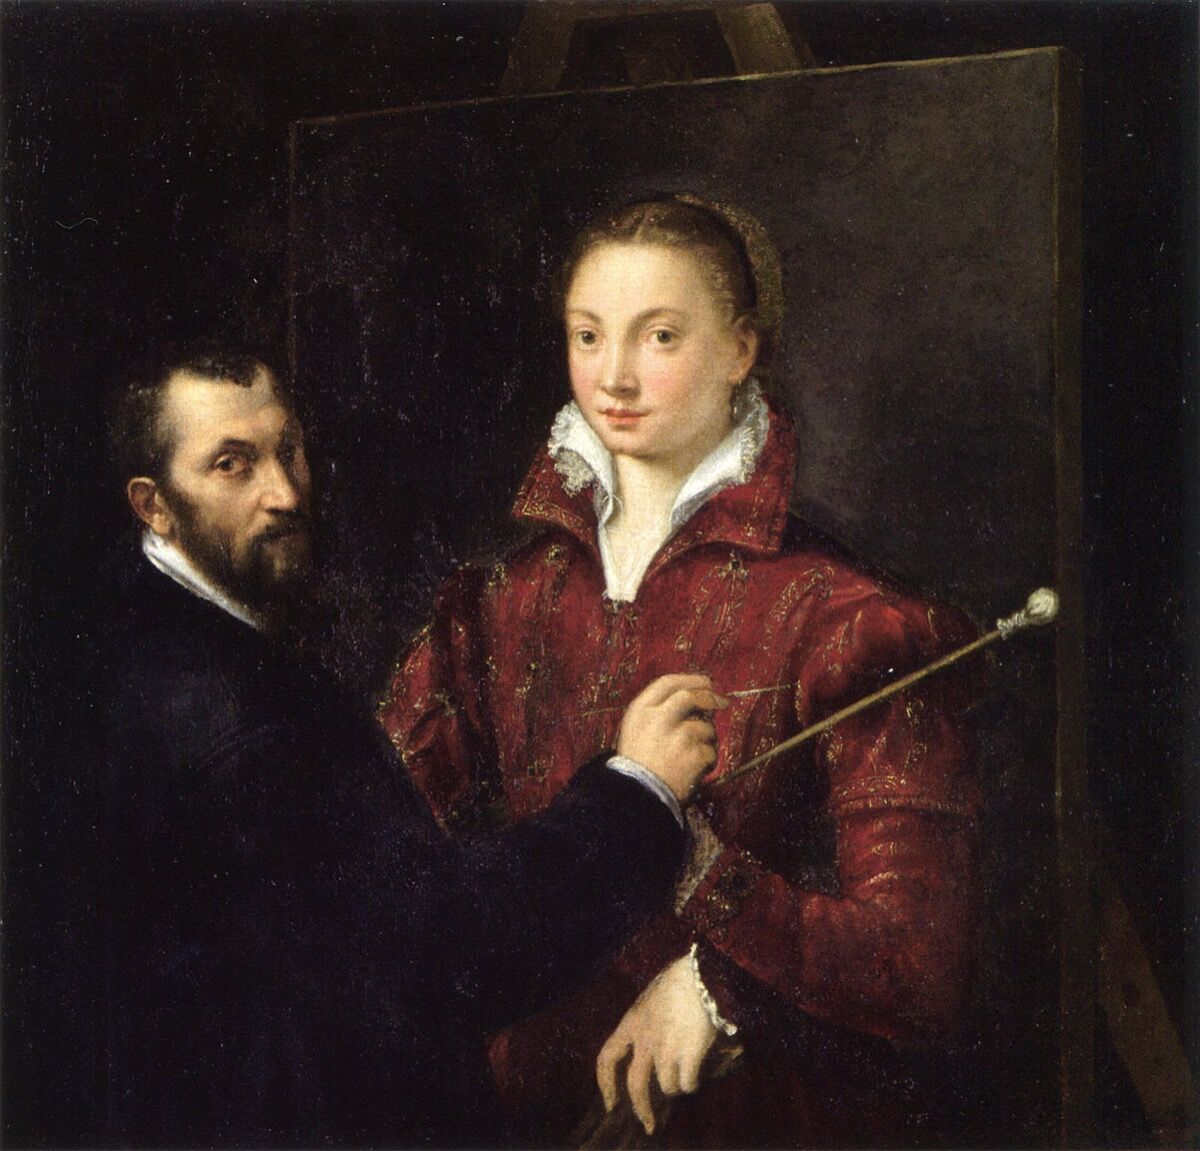 Sofonisba Anguissola, Self-portrait with Bernardino Campi, 1550.